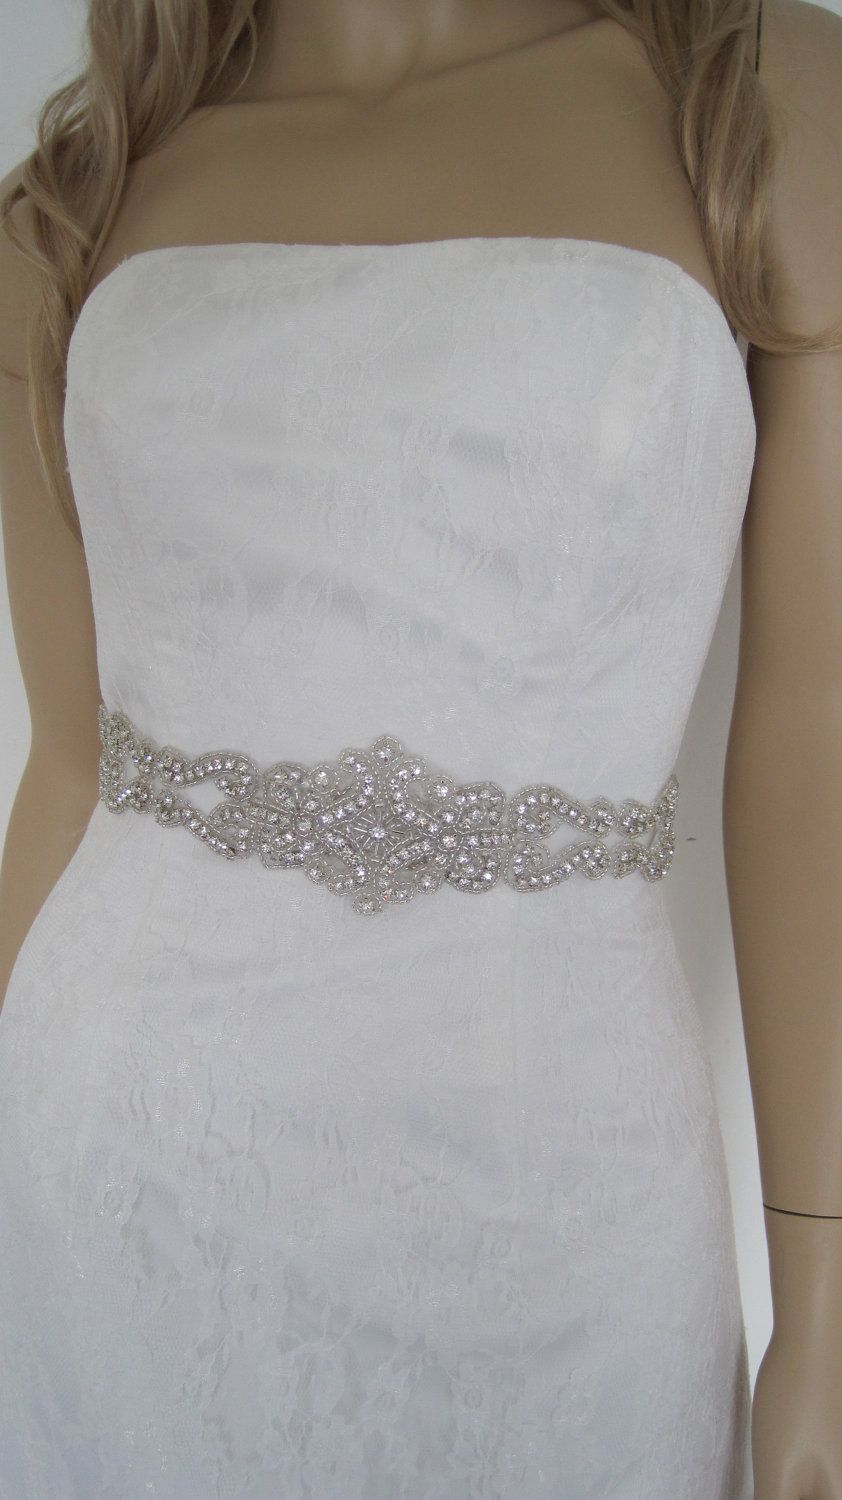 Fashion week Dress wedding sashes with crystals for woman